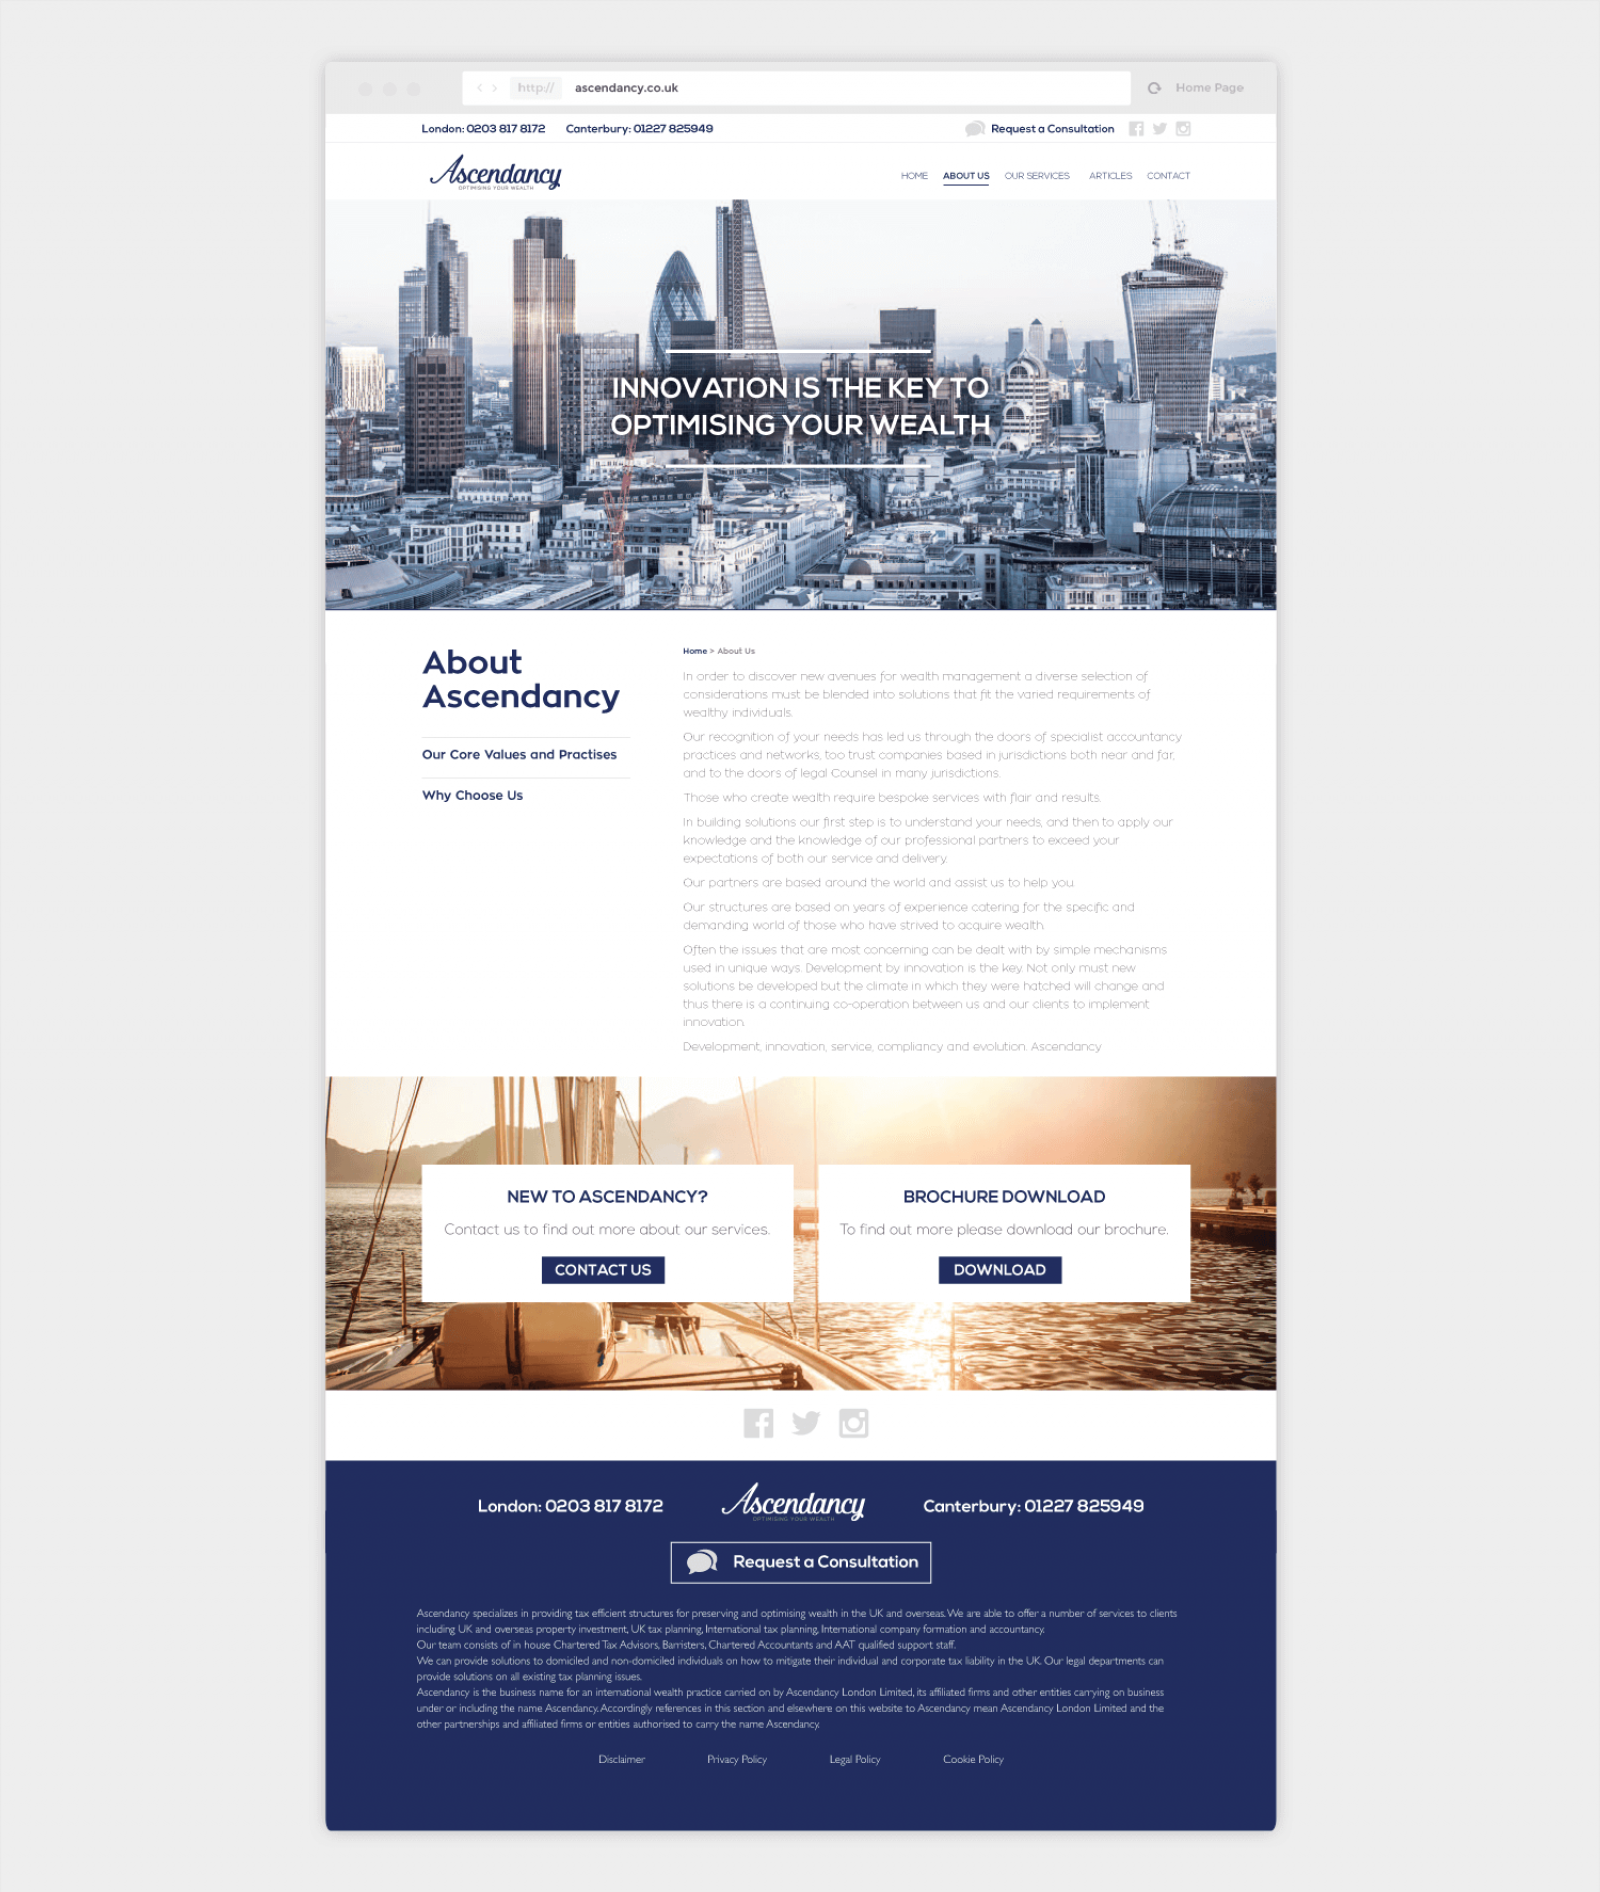 Ascendancy-website-2-design-agency-graphic-design-canterbury.png